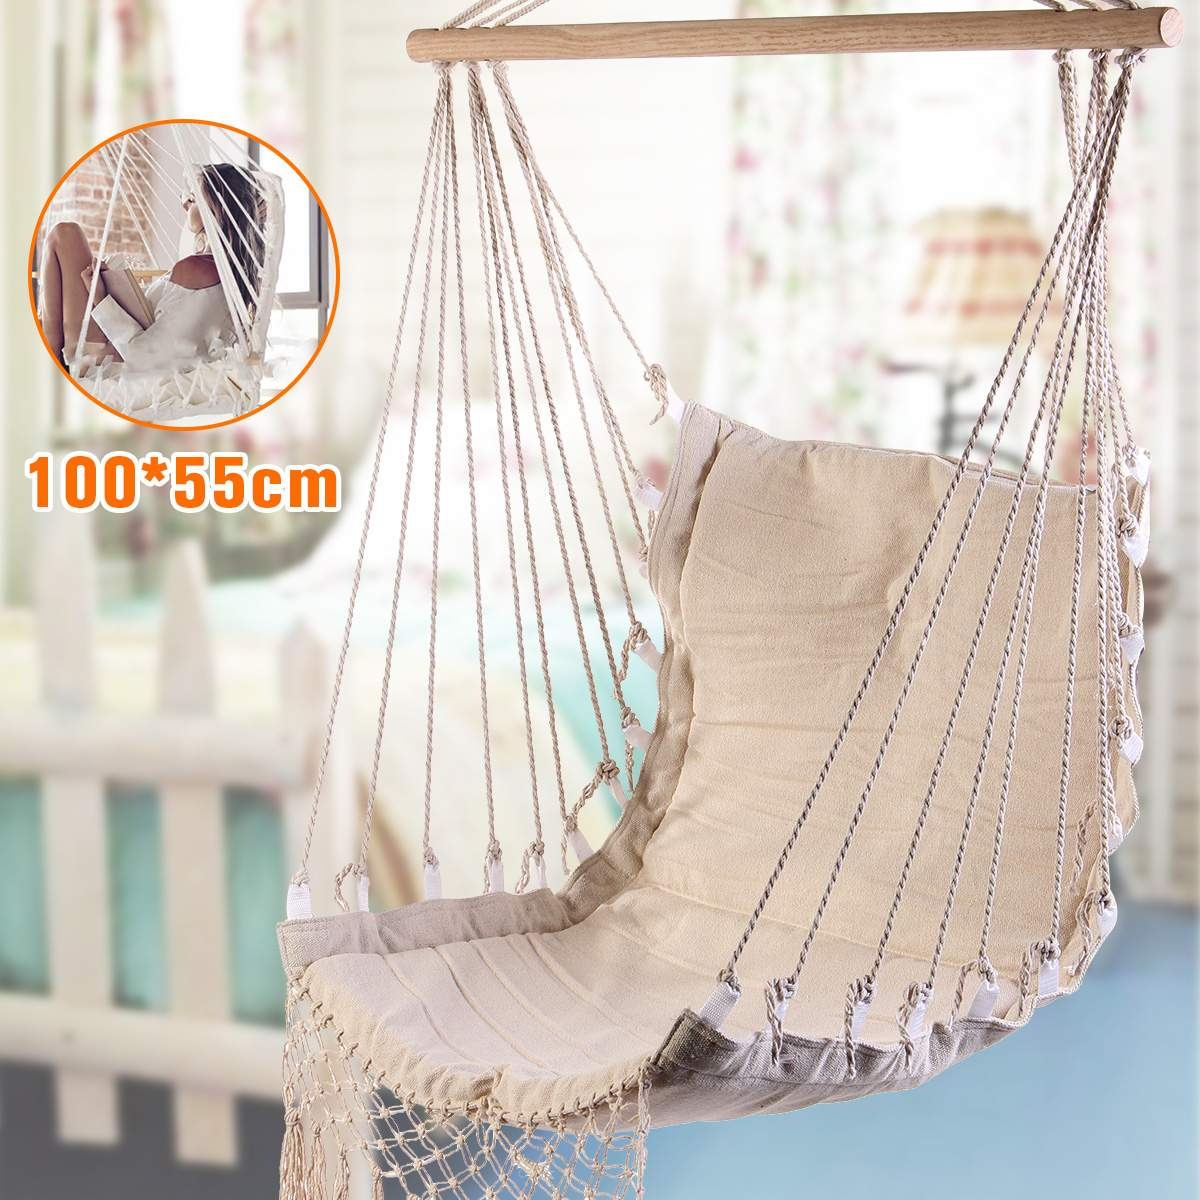 100x55cm Deluxe Hanging Hammock Swing Garden Indoor Outdoor Camping Hanging Chair With Wooden Rod